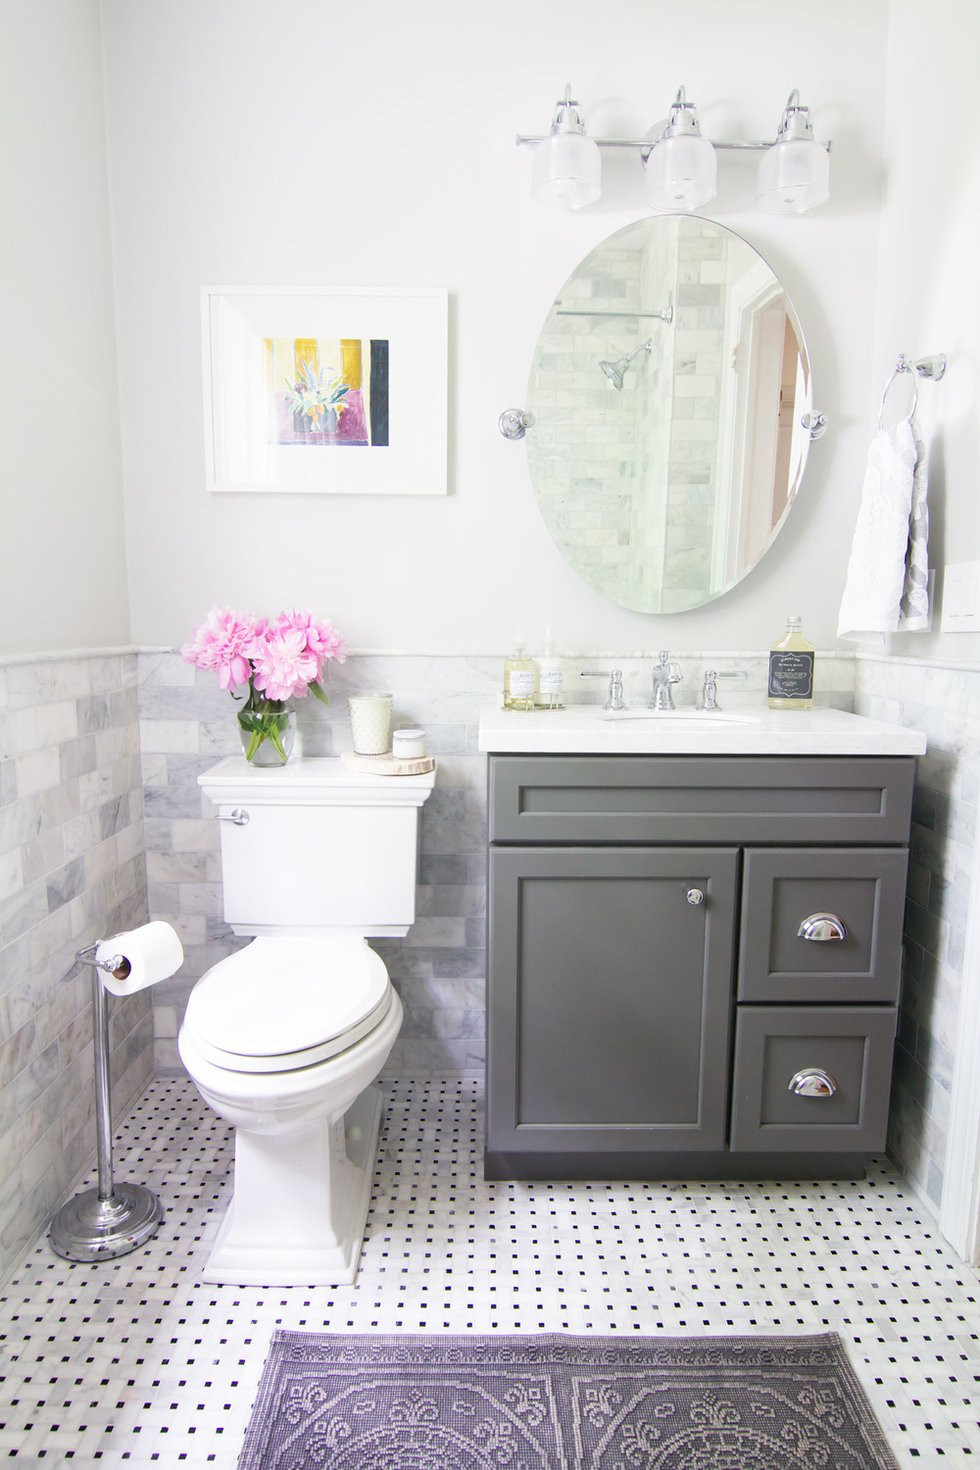 Best ideas about Small Bathroom Plans . Save or Pin 11 Awesome Type Small Bathroom Designs Awesome 11 Now.